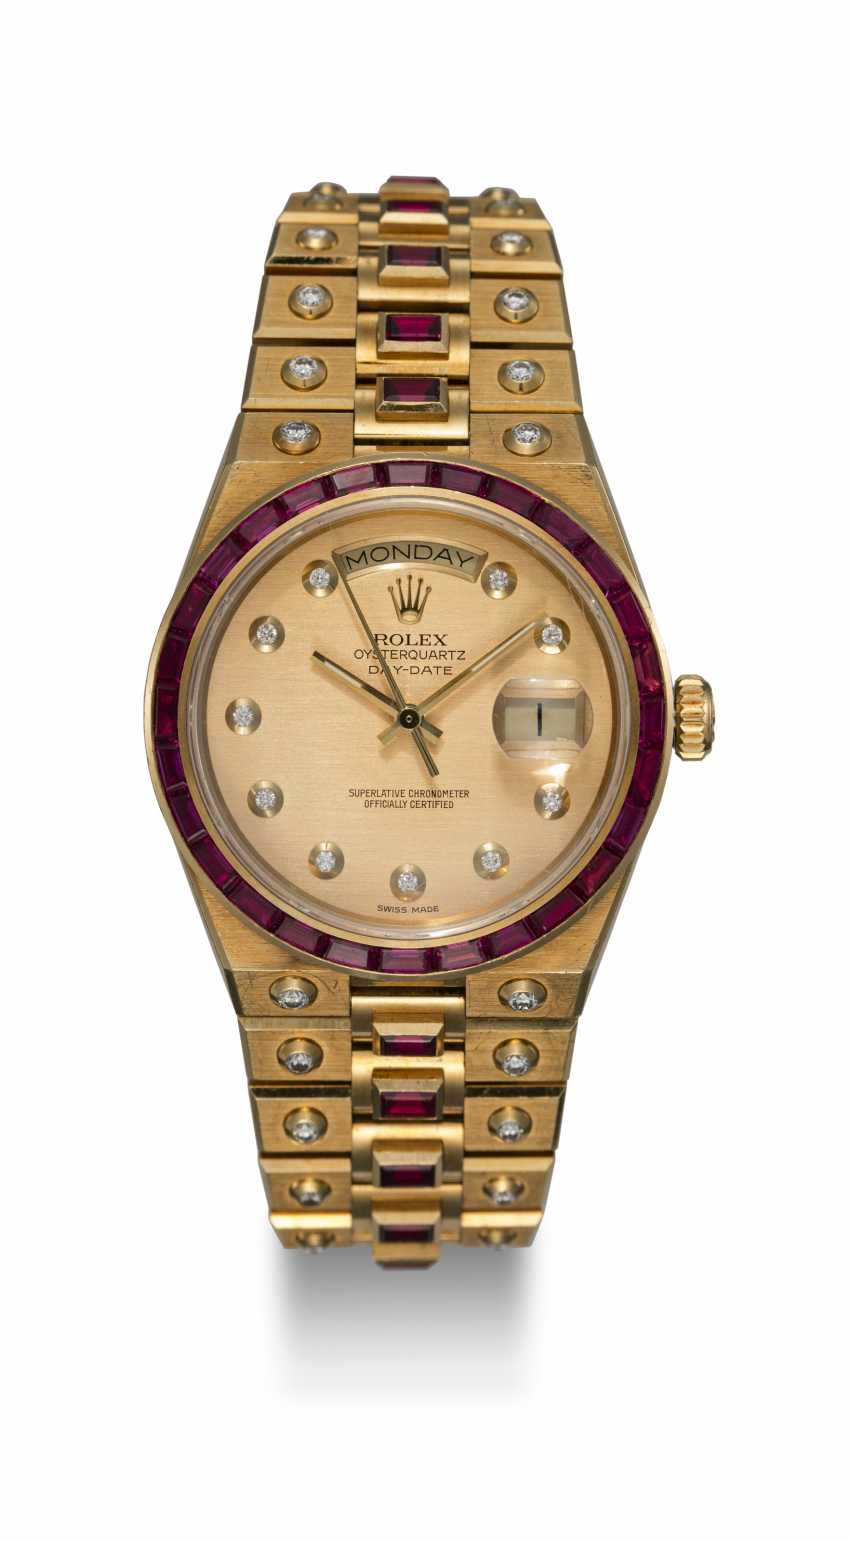 ROLEX. A RARE GOLD OYSTERQUARTZ DAY-DATE, DIAMOND AND RUBY-SET WRISTWATCH AND BRACELET, REF. 19168  - photo 3